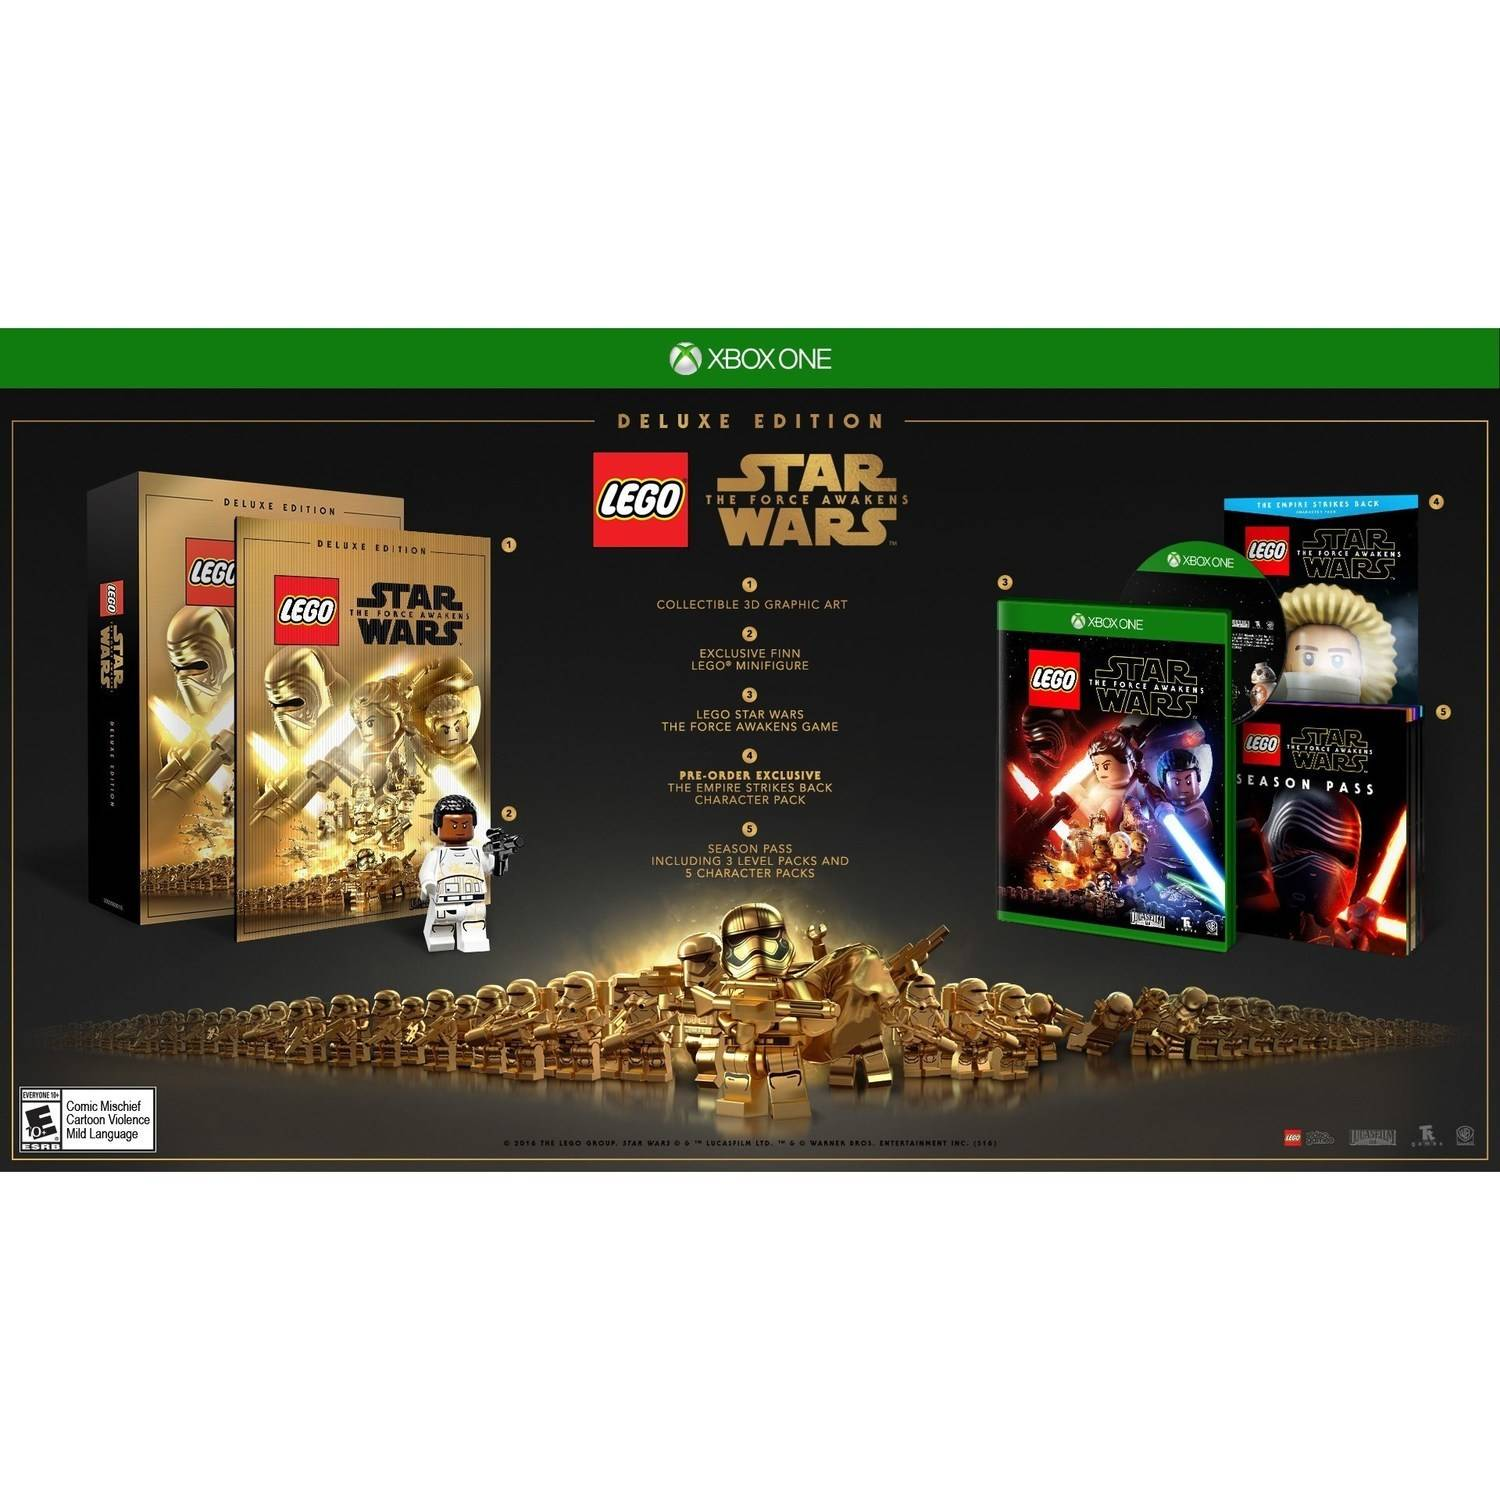 LEGO Star Wars The Force Awakens Deluxe Edition (Xbox One)